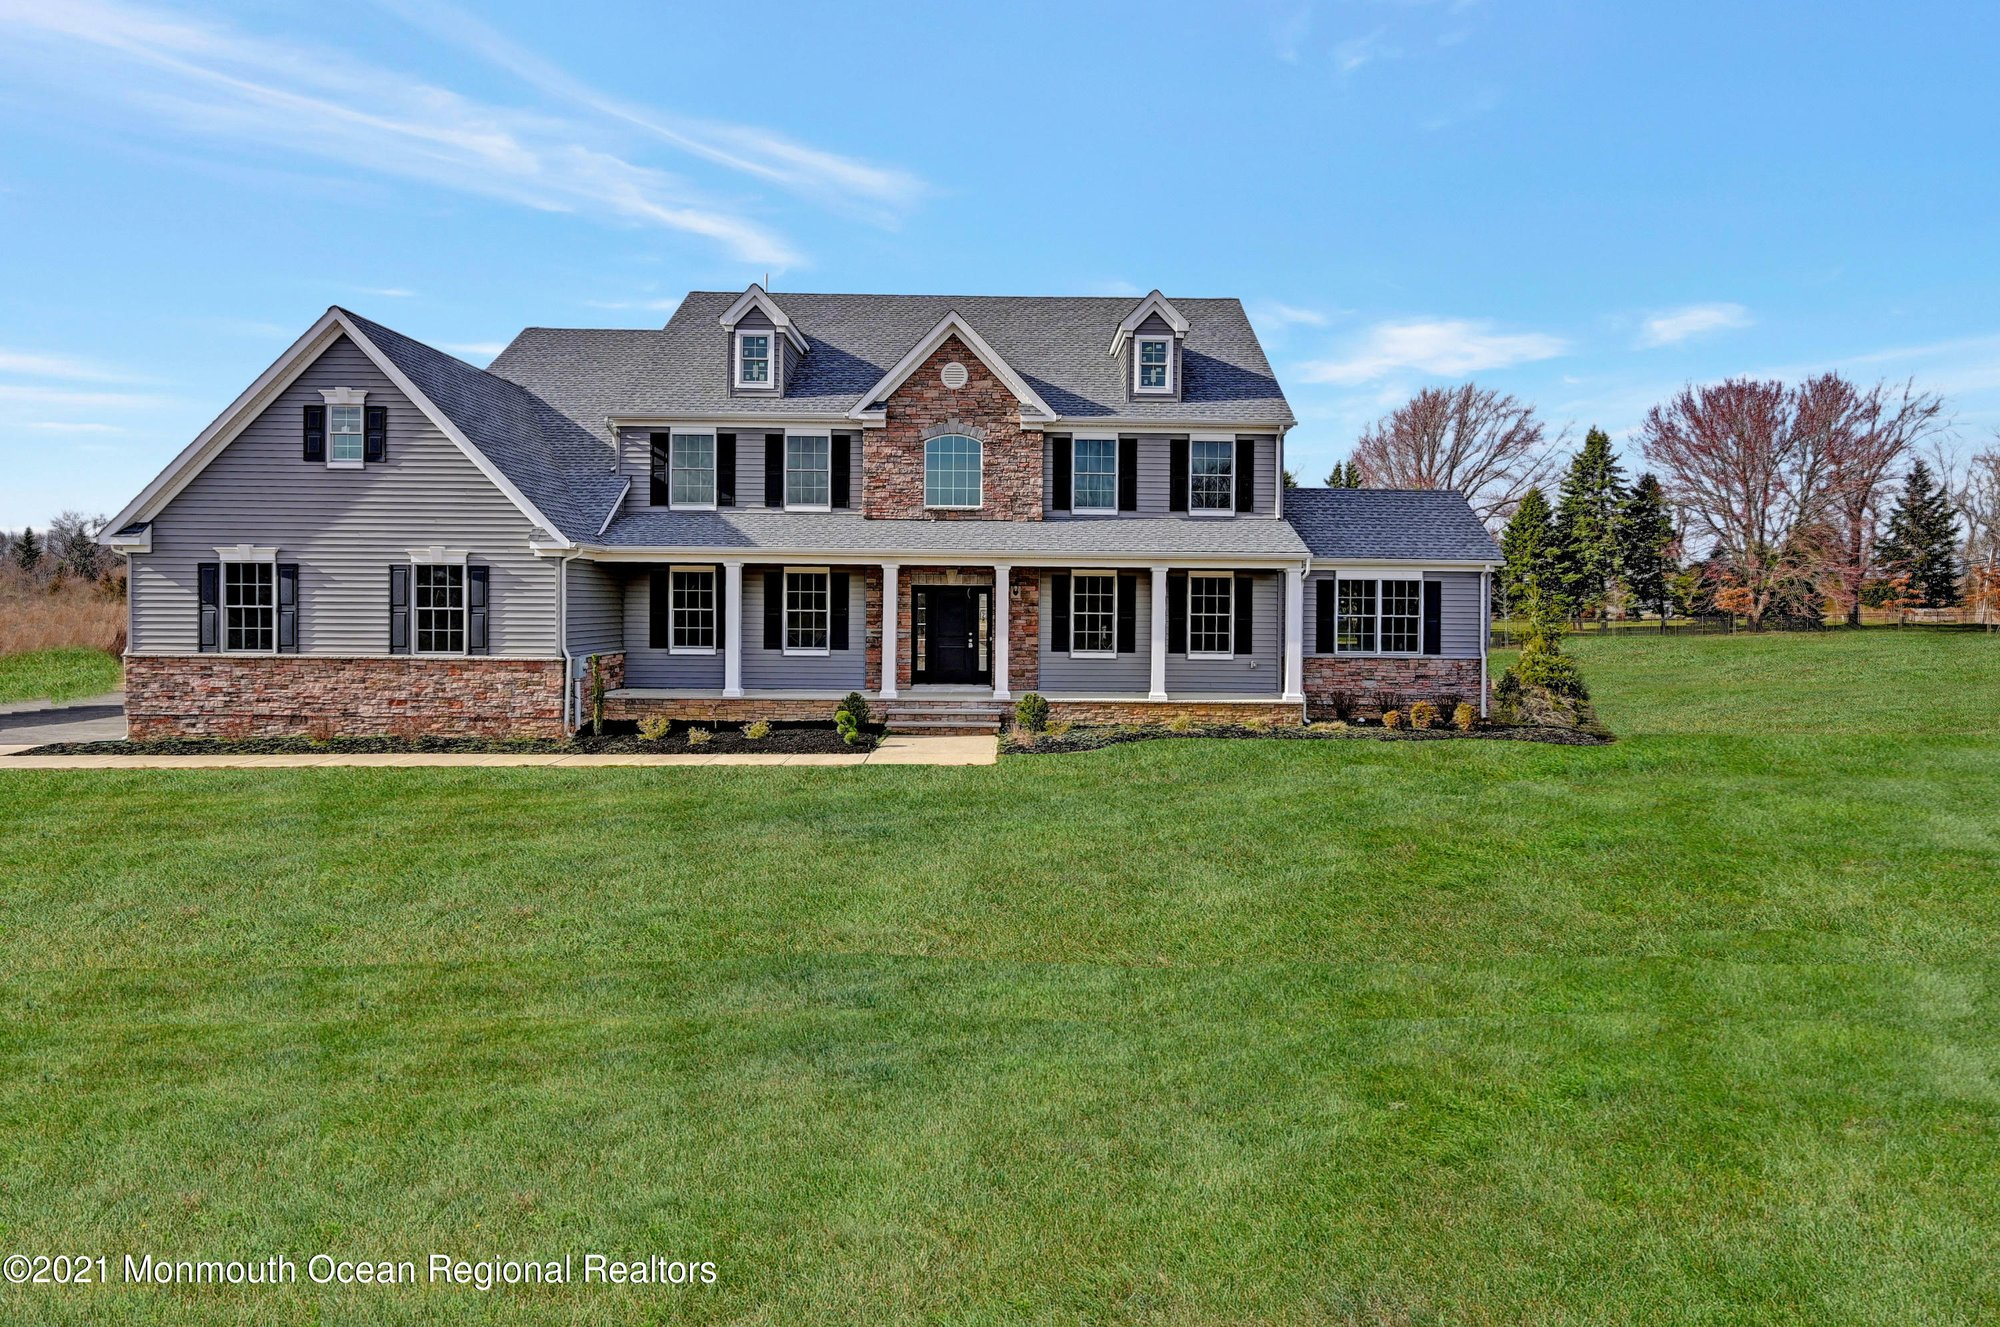 House in Millstone, New Jersey, United States 1